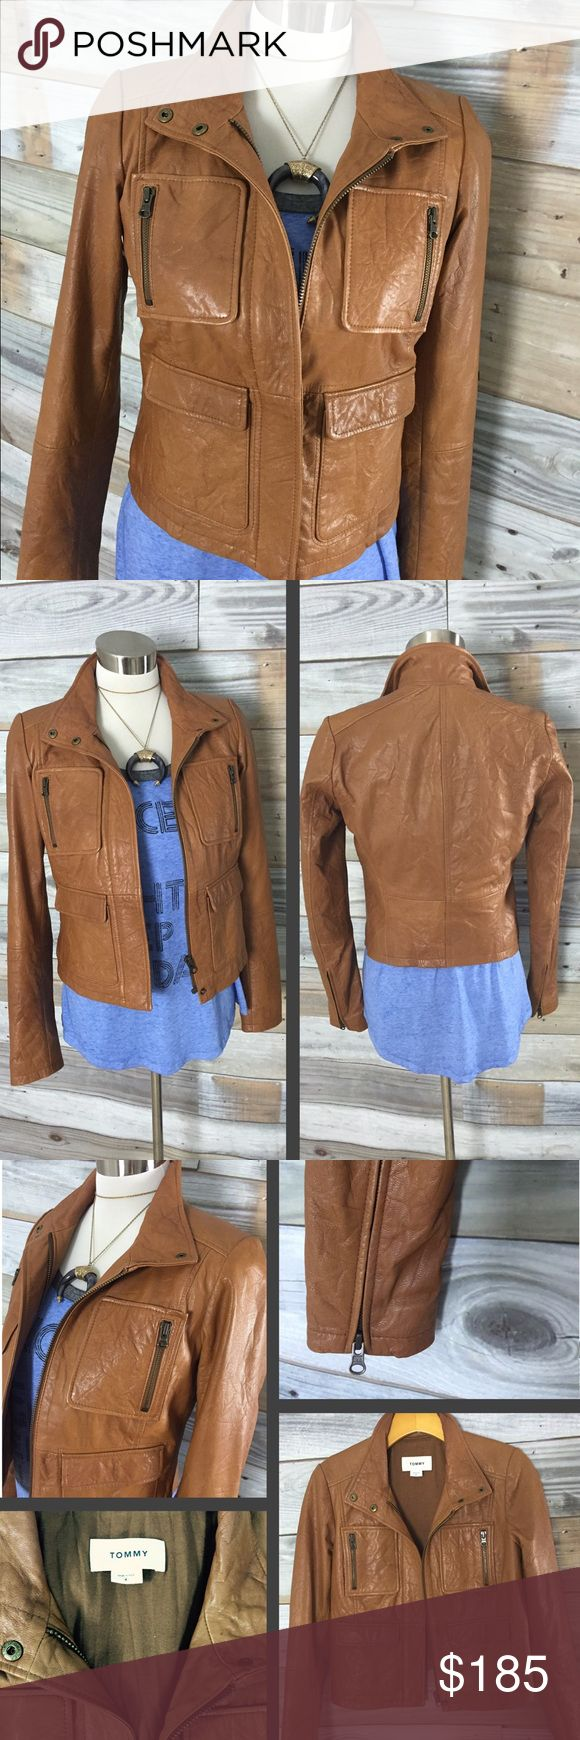 {Tommy} NEW Tan/Camel Genuine Leather Moto Jacket Absolutely GORGEOUS NWOT piece that every woman needs in her closet! (Well, one in black too...) beautiful buttery soft genuine leather in a deep camel tan color. Nice long sleeves w/ zippers to enable easy layering...2 zippered pockets on either side of breast and 2 flap pockets beneath those. Zips up front/side moto style, & 2-button banded collar (optional stand up when closed); all-around gorgeous jacket. Looks amazing with dress & boots…